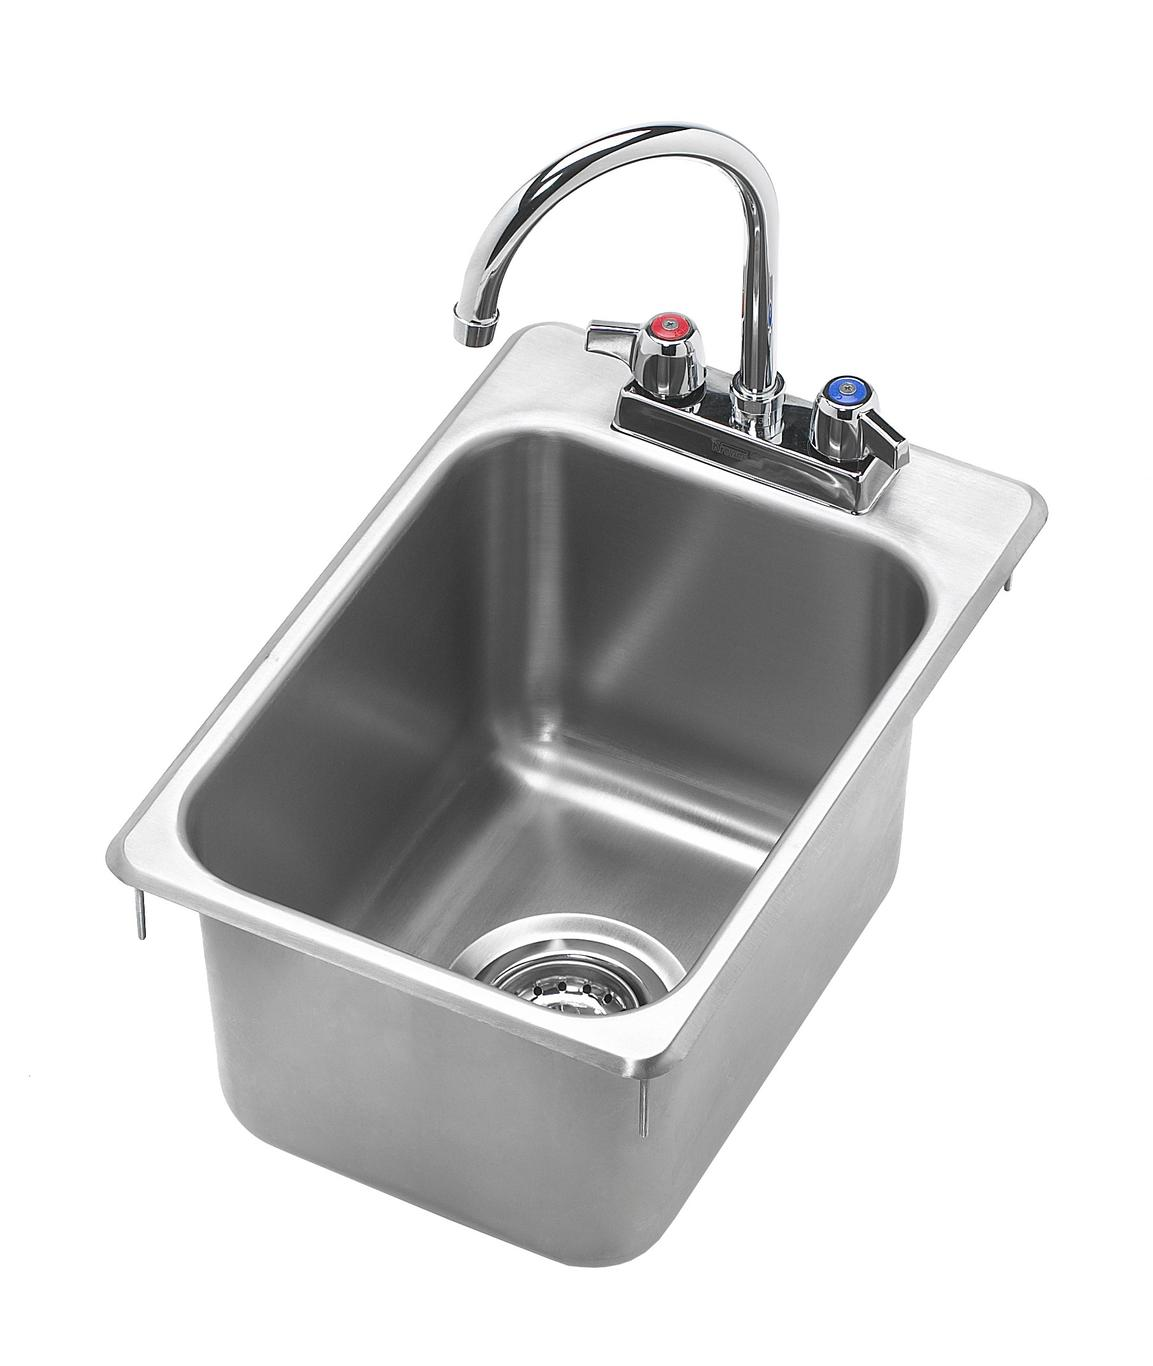 Krowne Metal Hs 1419 12 Quot X 18 Quot Drop In Hand Sink W 6